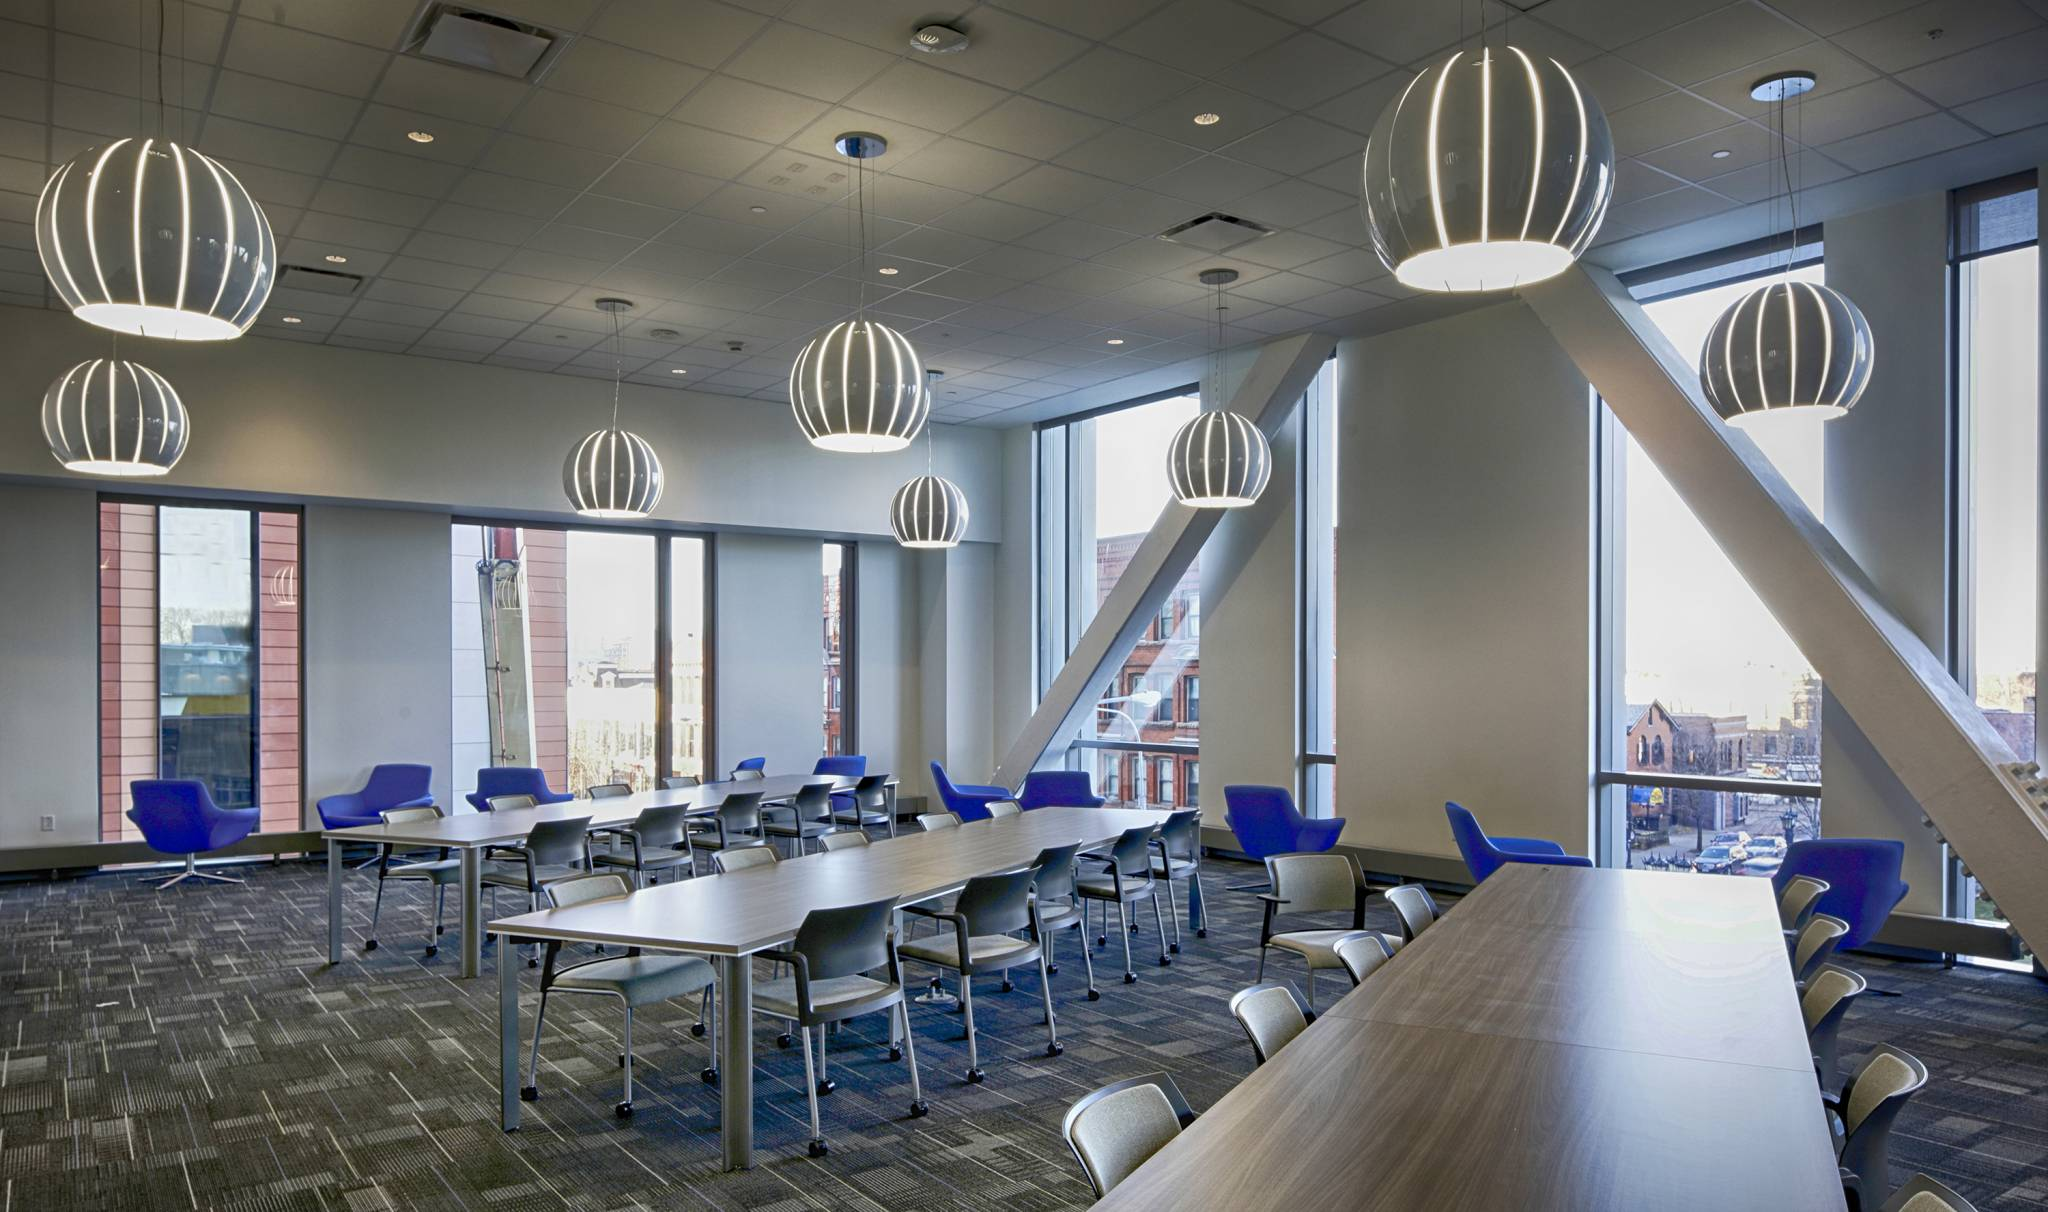 UB Med School reading room